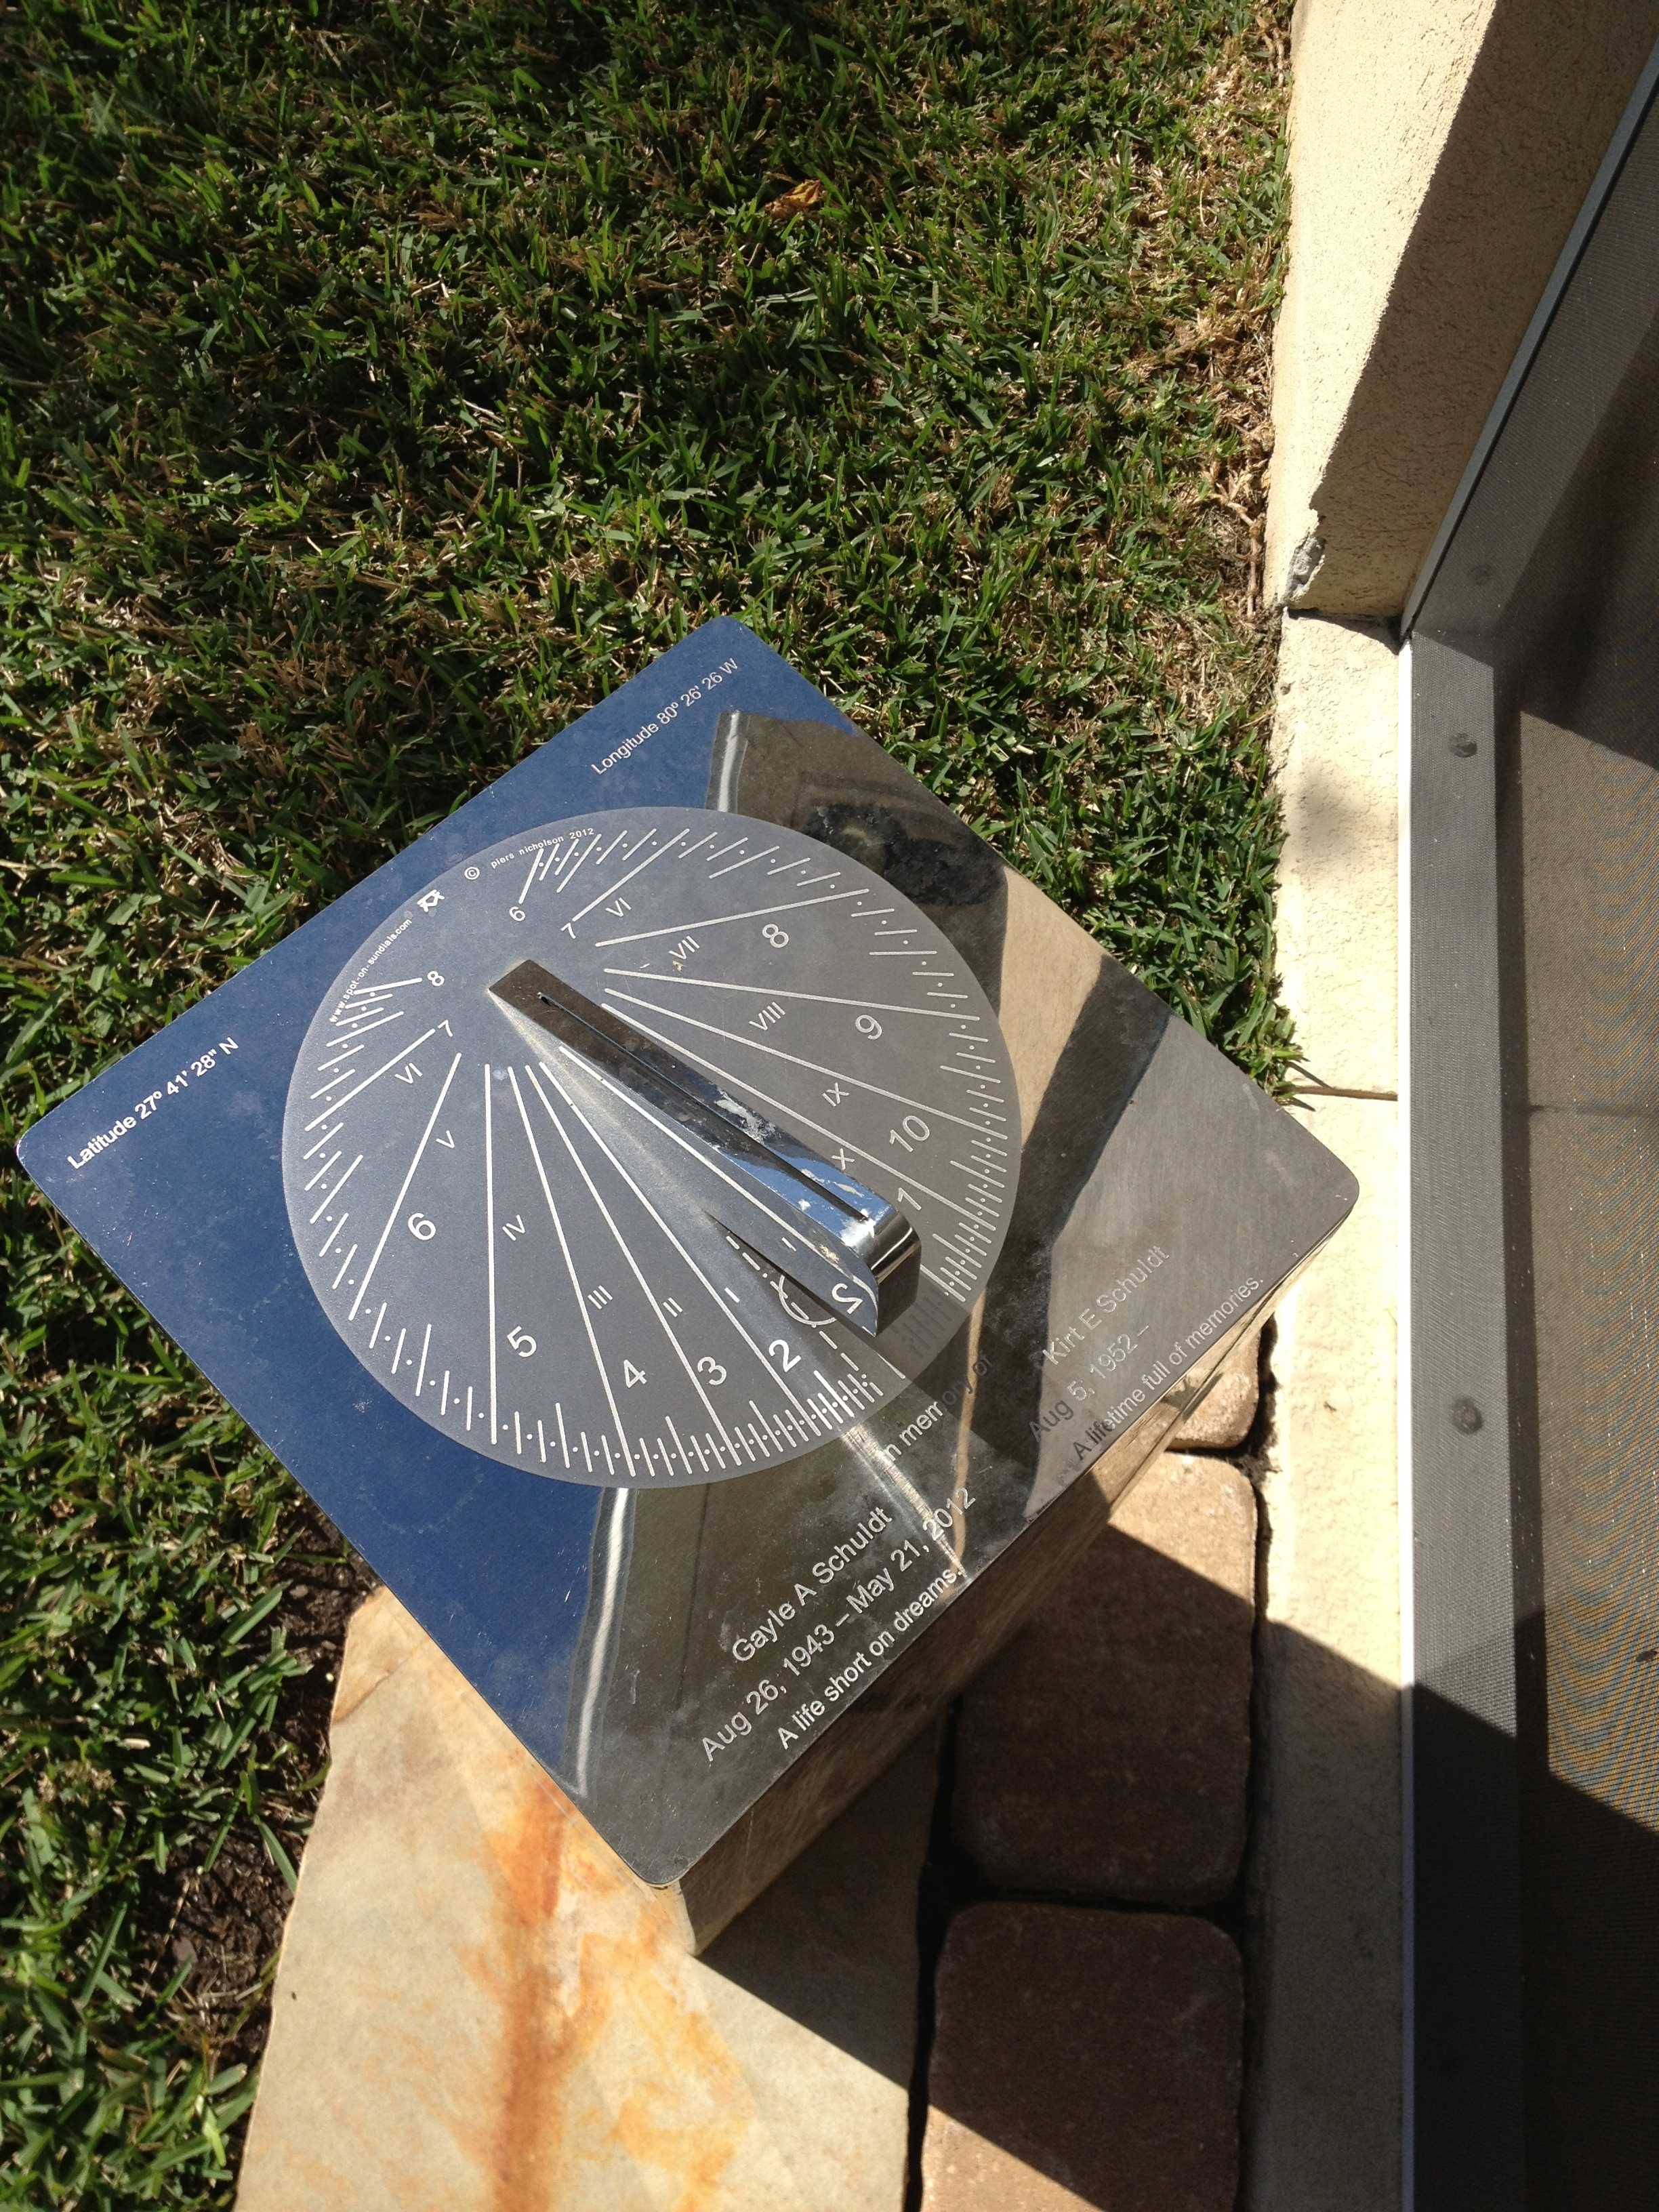 stainless steel sundials show excellent reflection